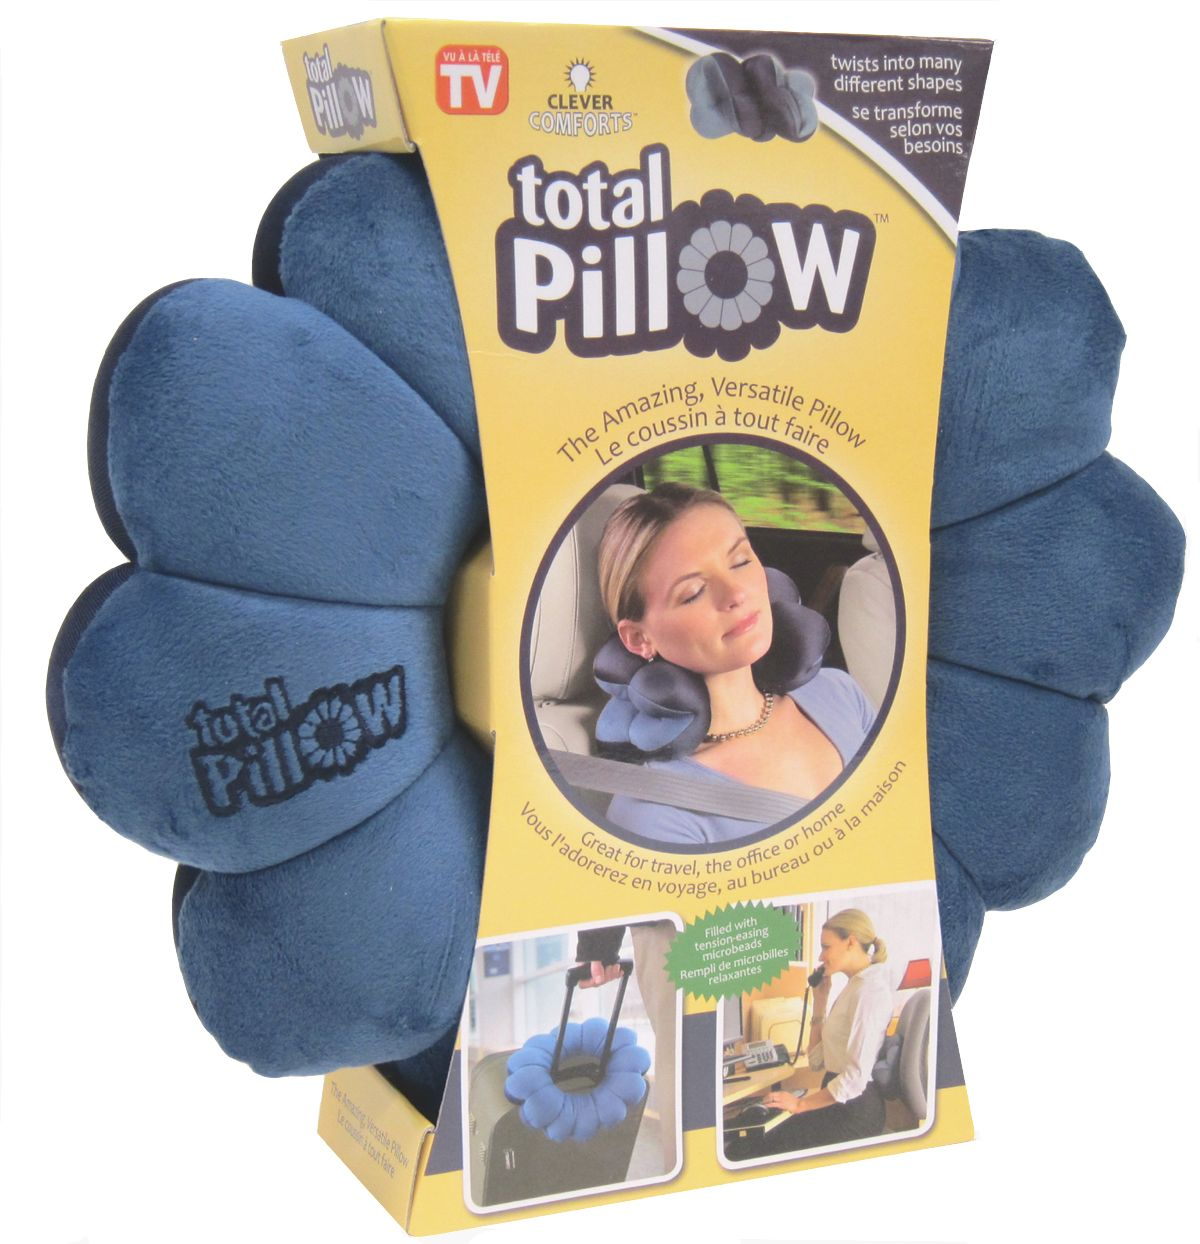 Total Pillow for Office, Home and Travel. Versatile Uses